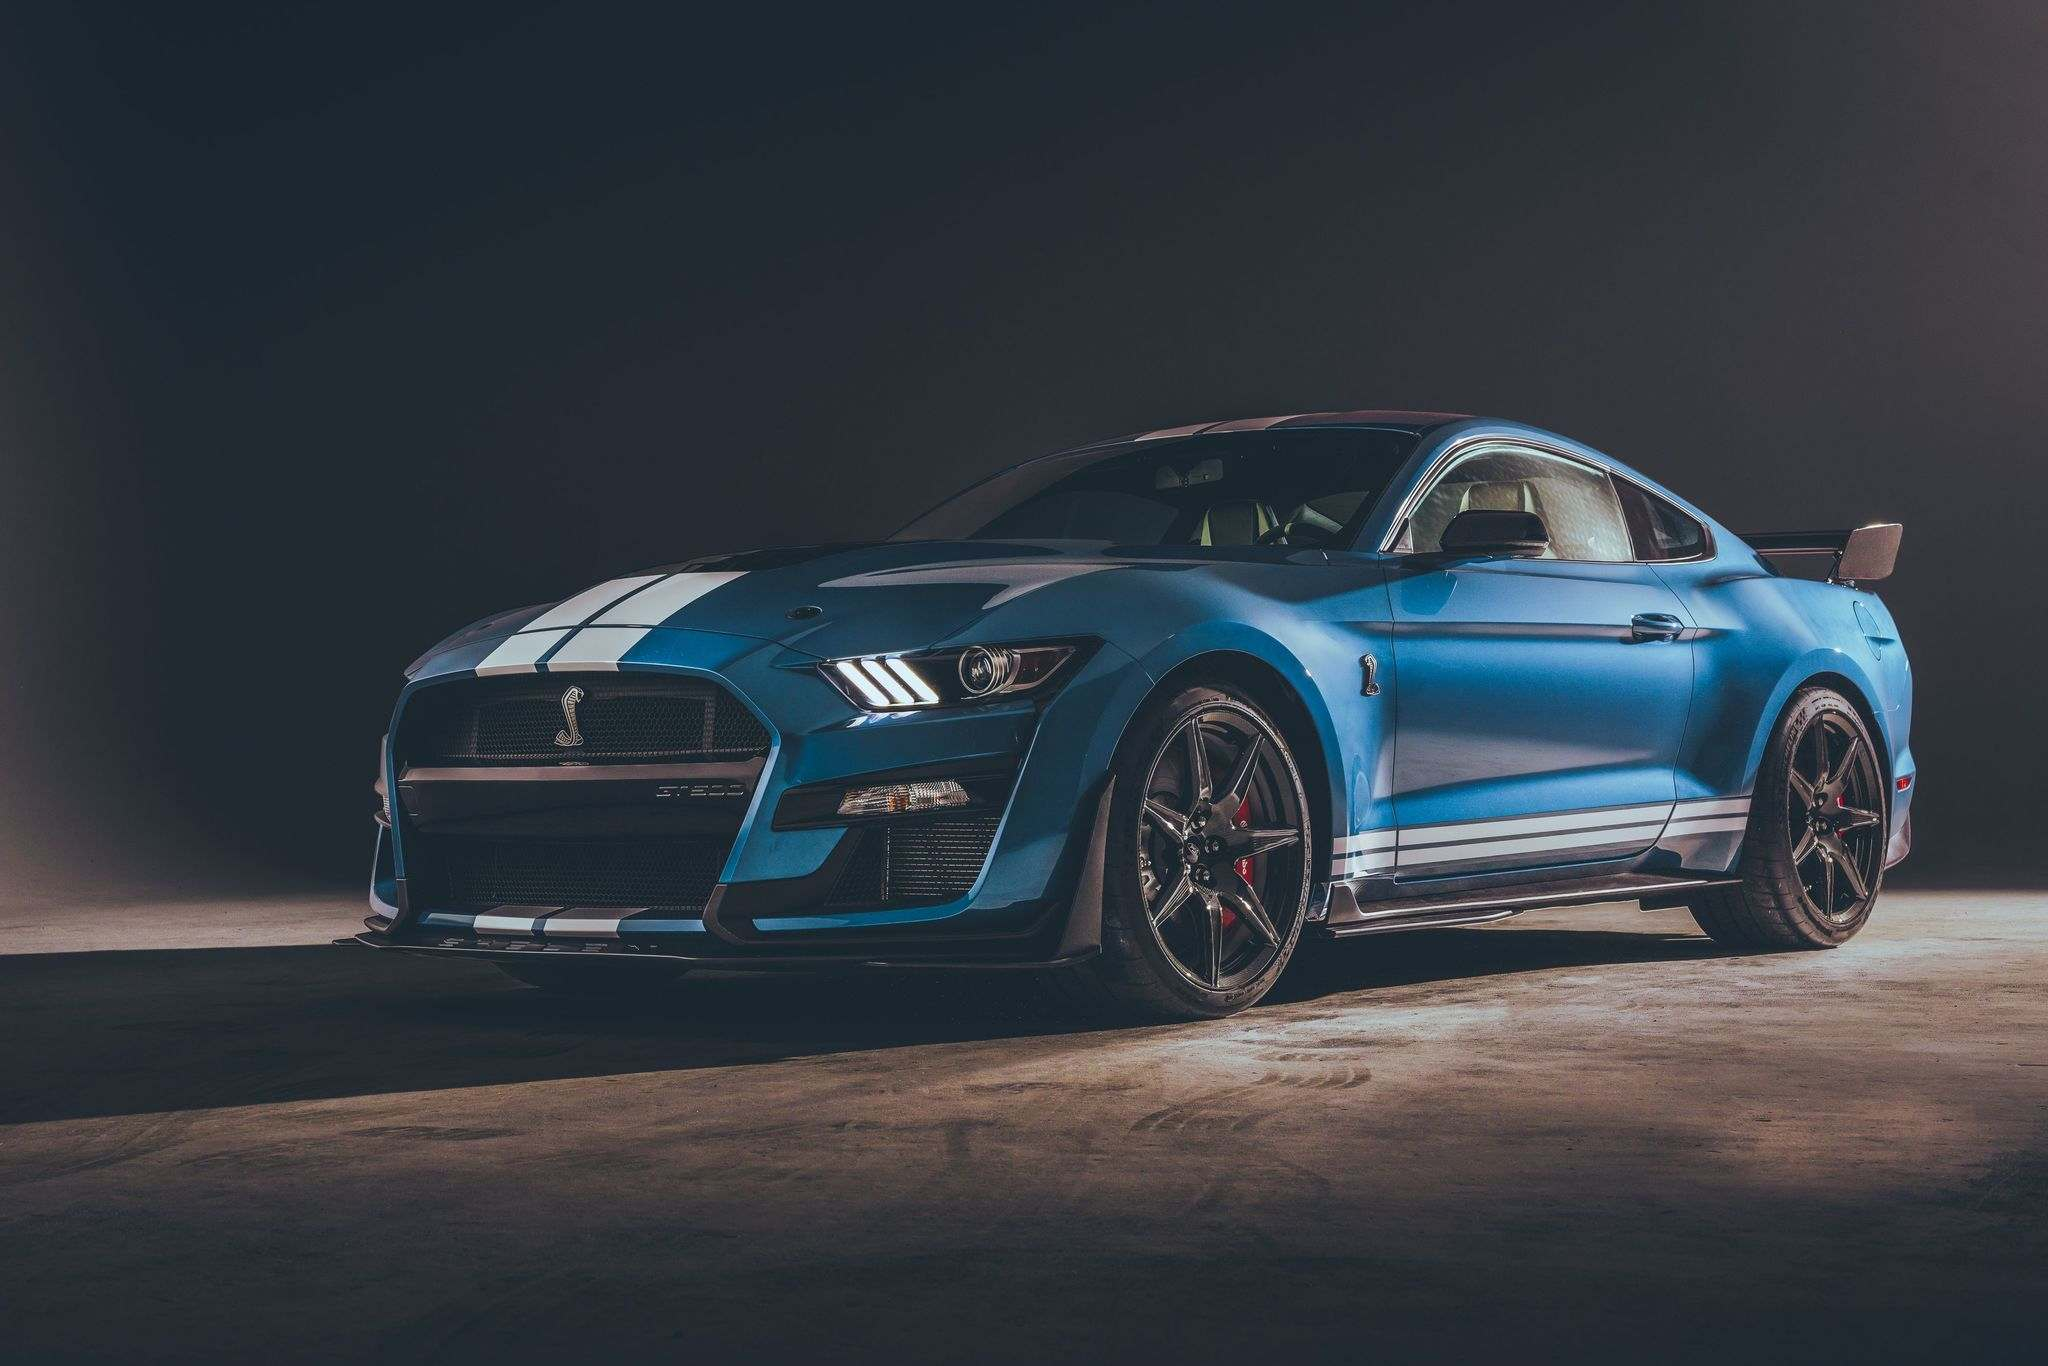 FordThe 2020 Shelby GT500 Mustang can scorch the quarter-mile in less than 11 seconds.